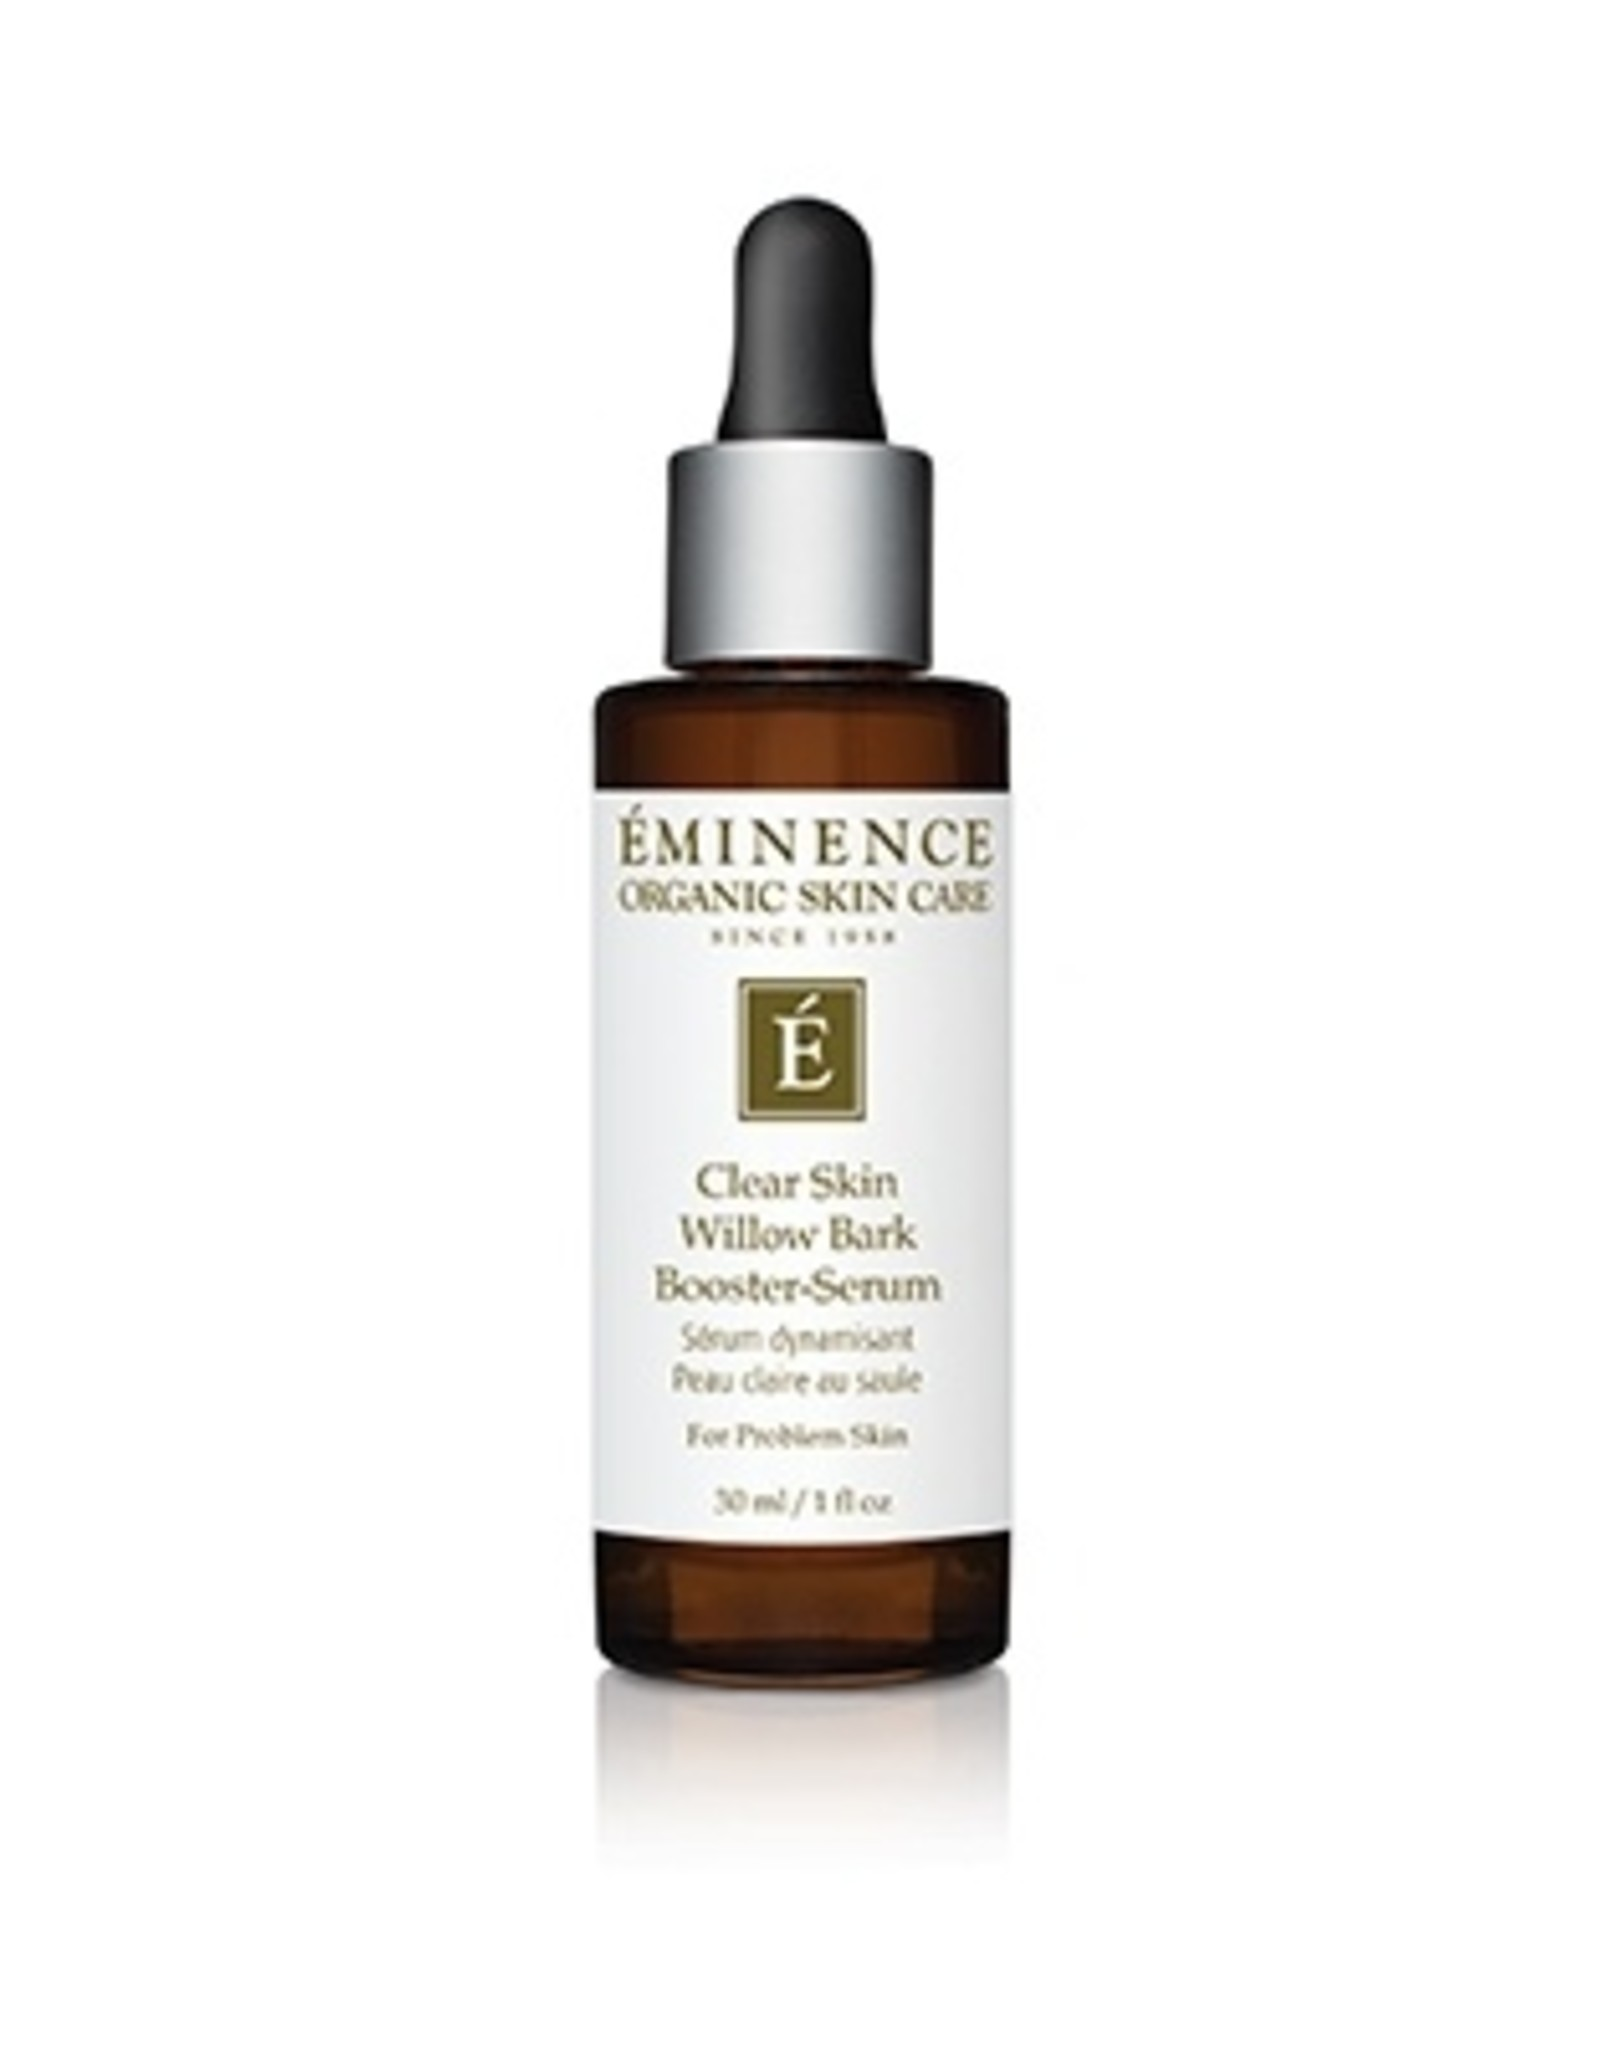 Eminence Organic Skin Care Clear Skin Willow Bark Booster-Serum